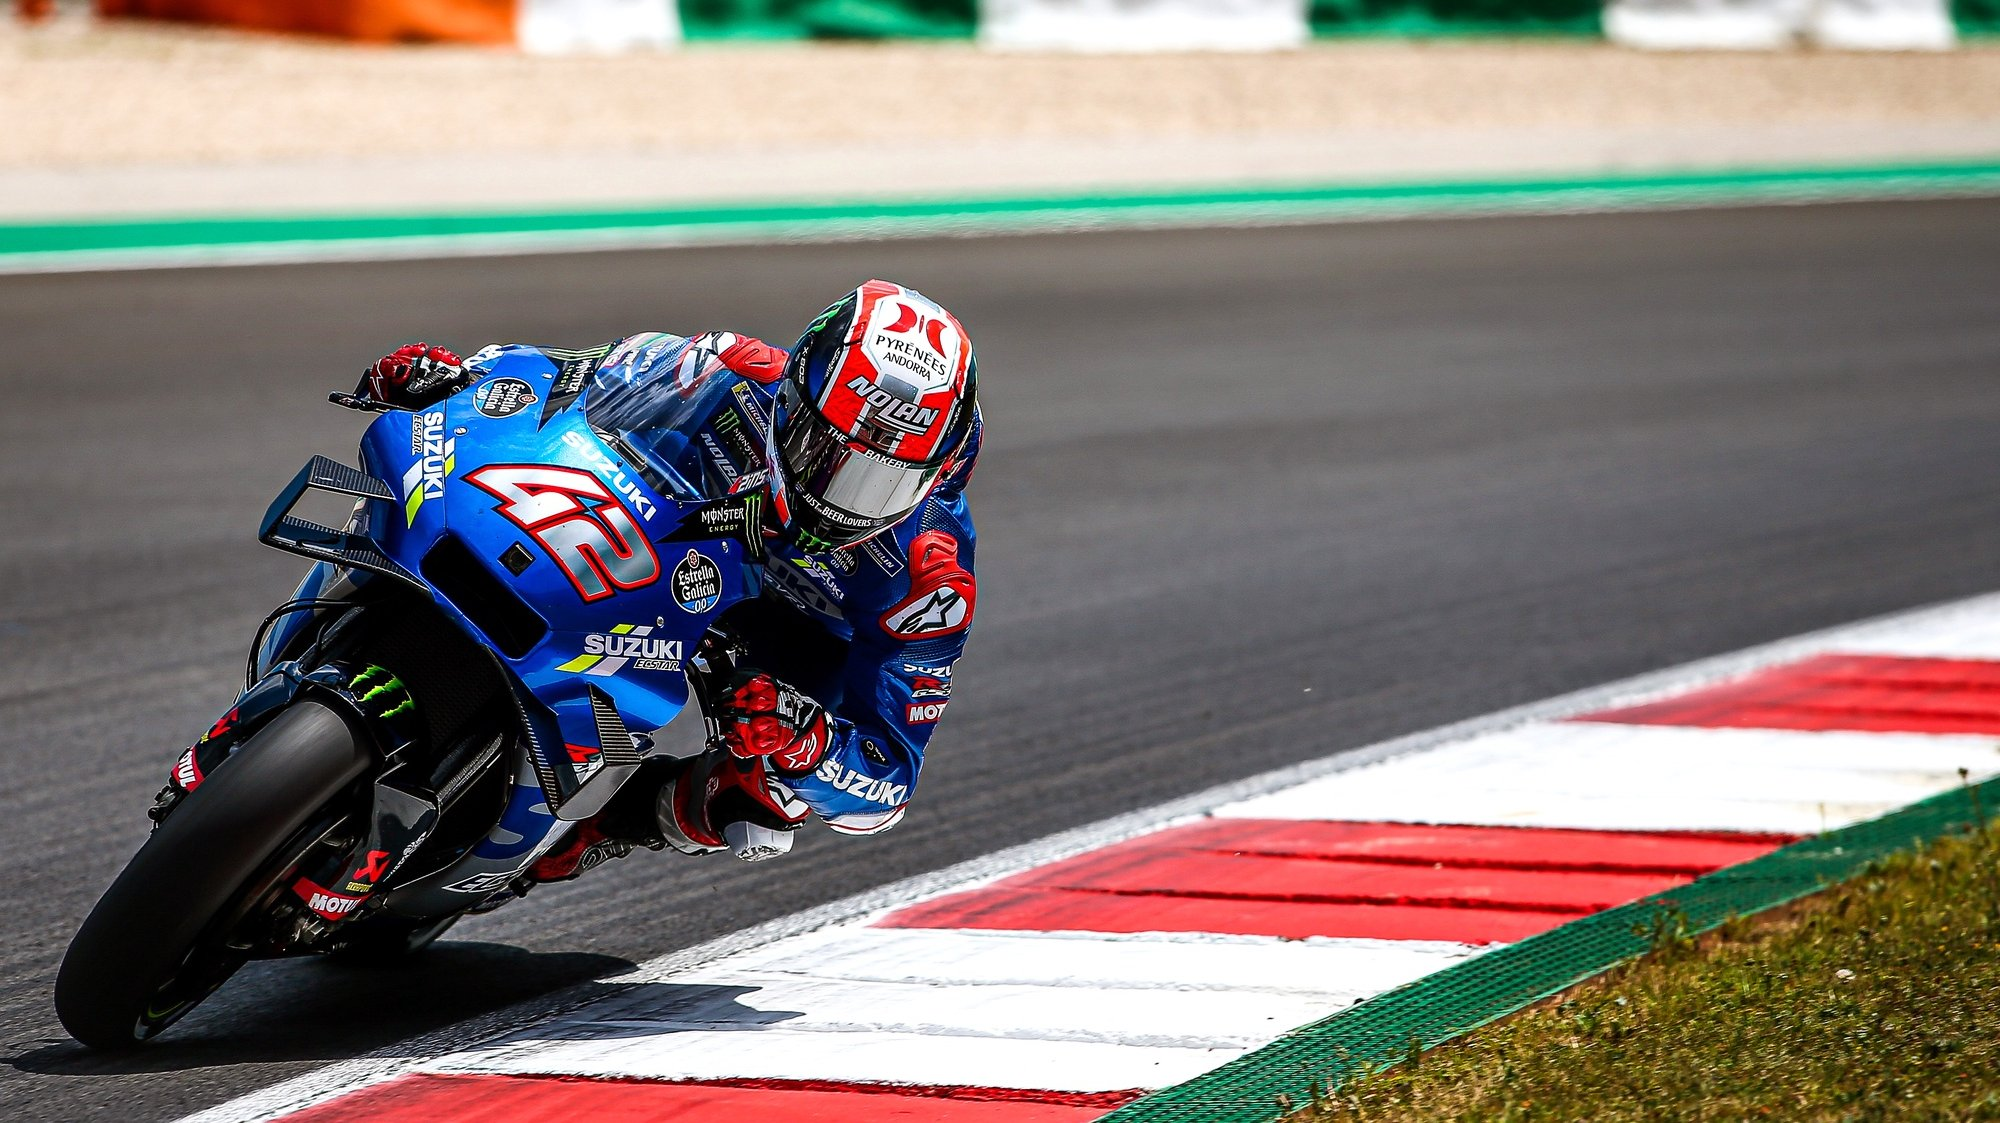 epa09141605 Spanish MotoGP rider Alex Rins of the Suzuki Ecstar team in action during the qualifying session of the Motorcycling Grand Prix of Portugal at Algarve International race track in Portimao, southern Portugal, 17 April 2021. The Motorcycling Grand Prix of Portugal will take place on 18 April 2021.  EPA/JOSE SENA GOULAO